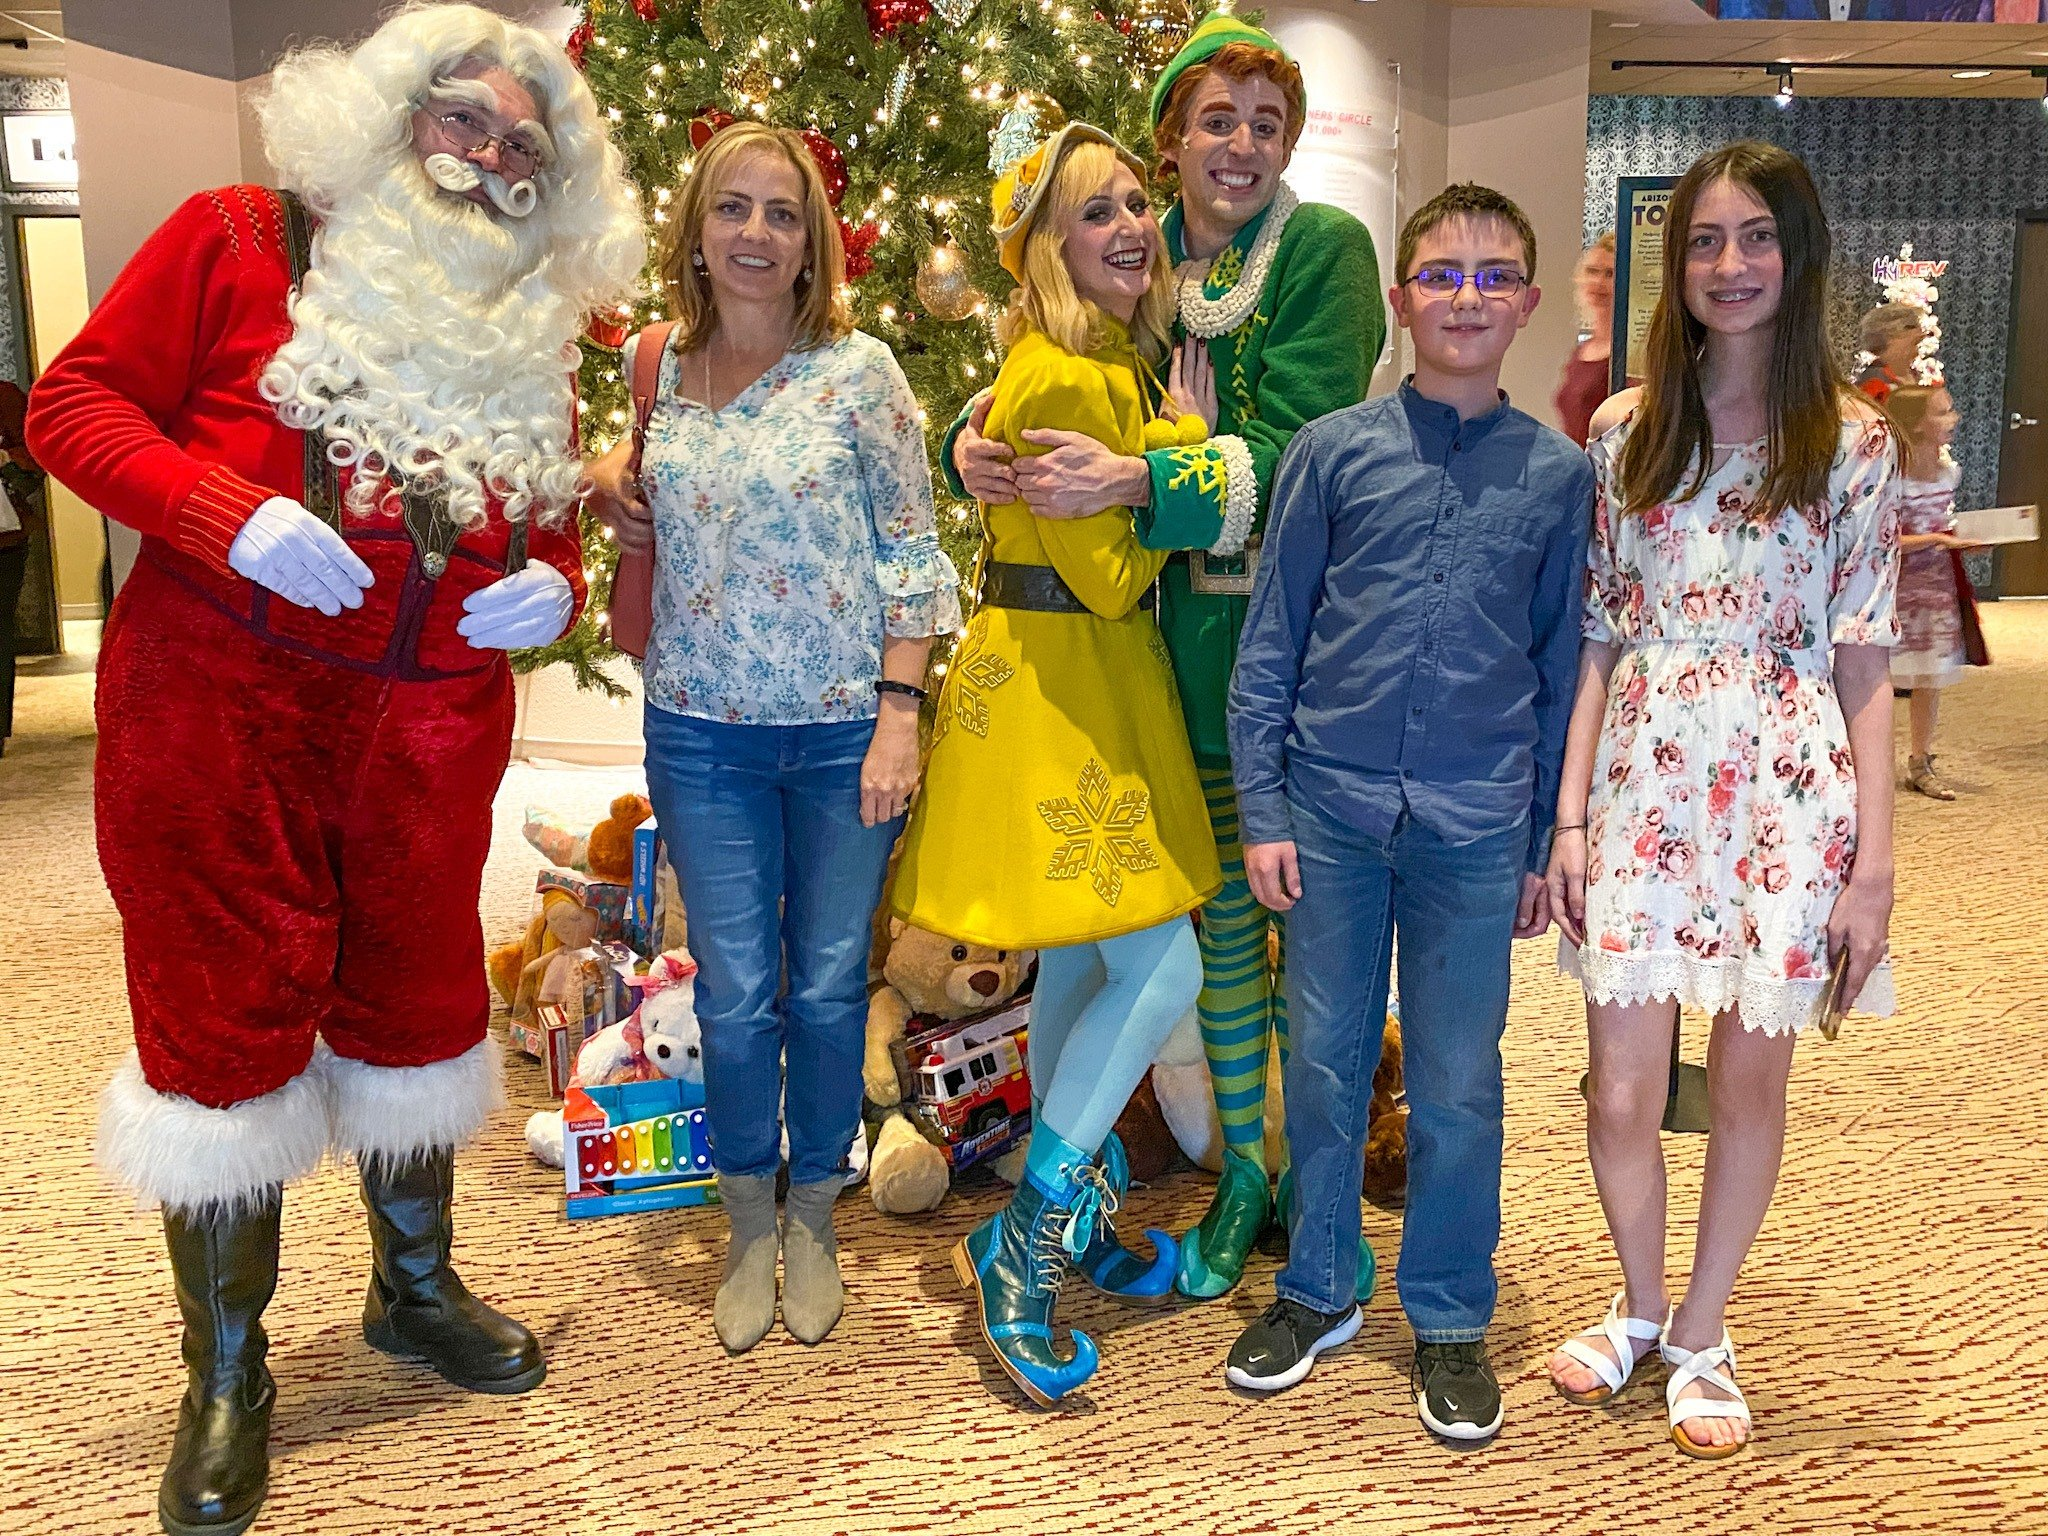 My family with Santa, Buddy the Elf, and Jovie at the 2019 Arizona Broadway Company's Elf the Musical